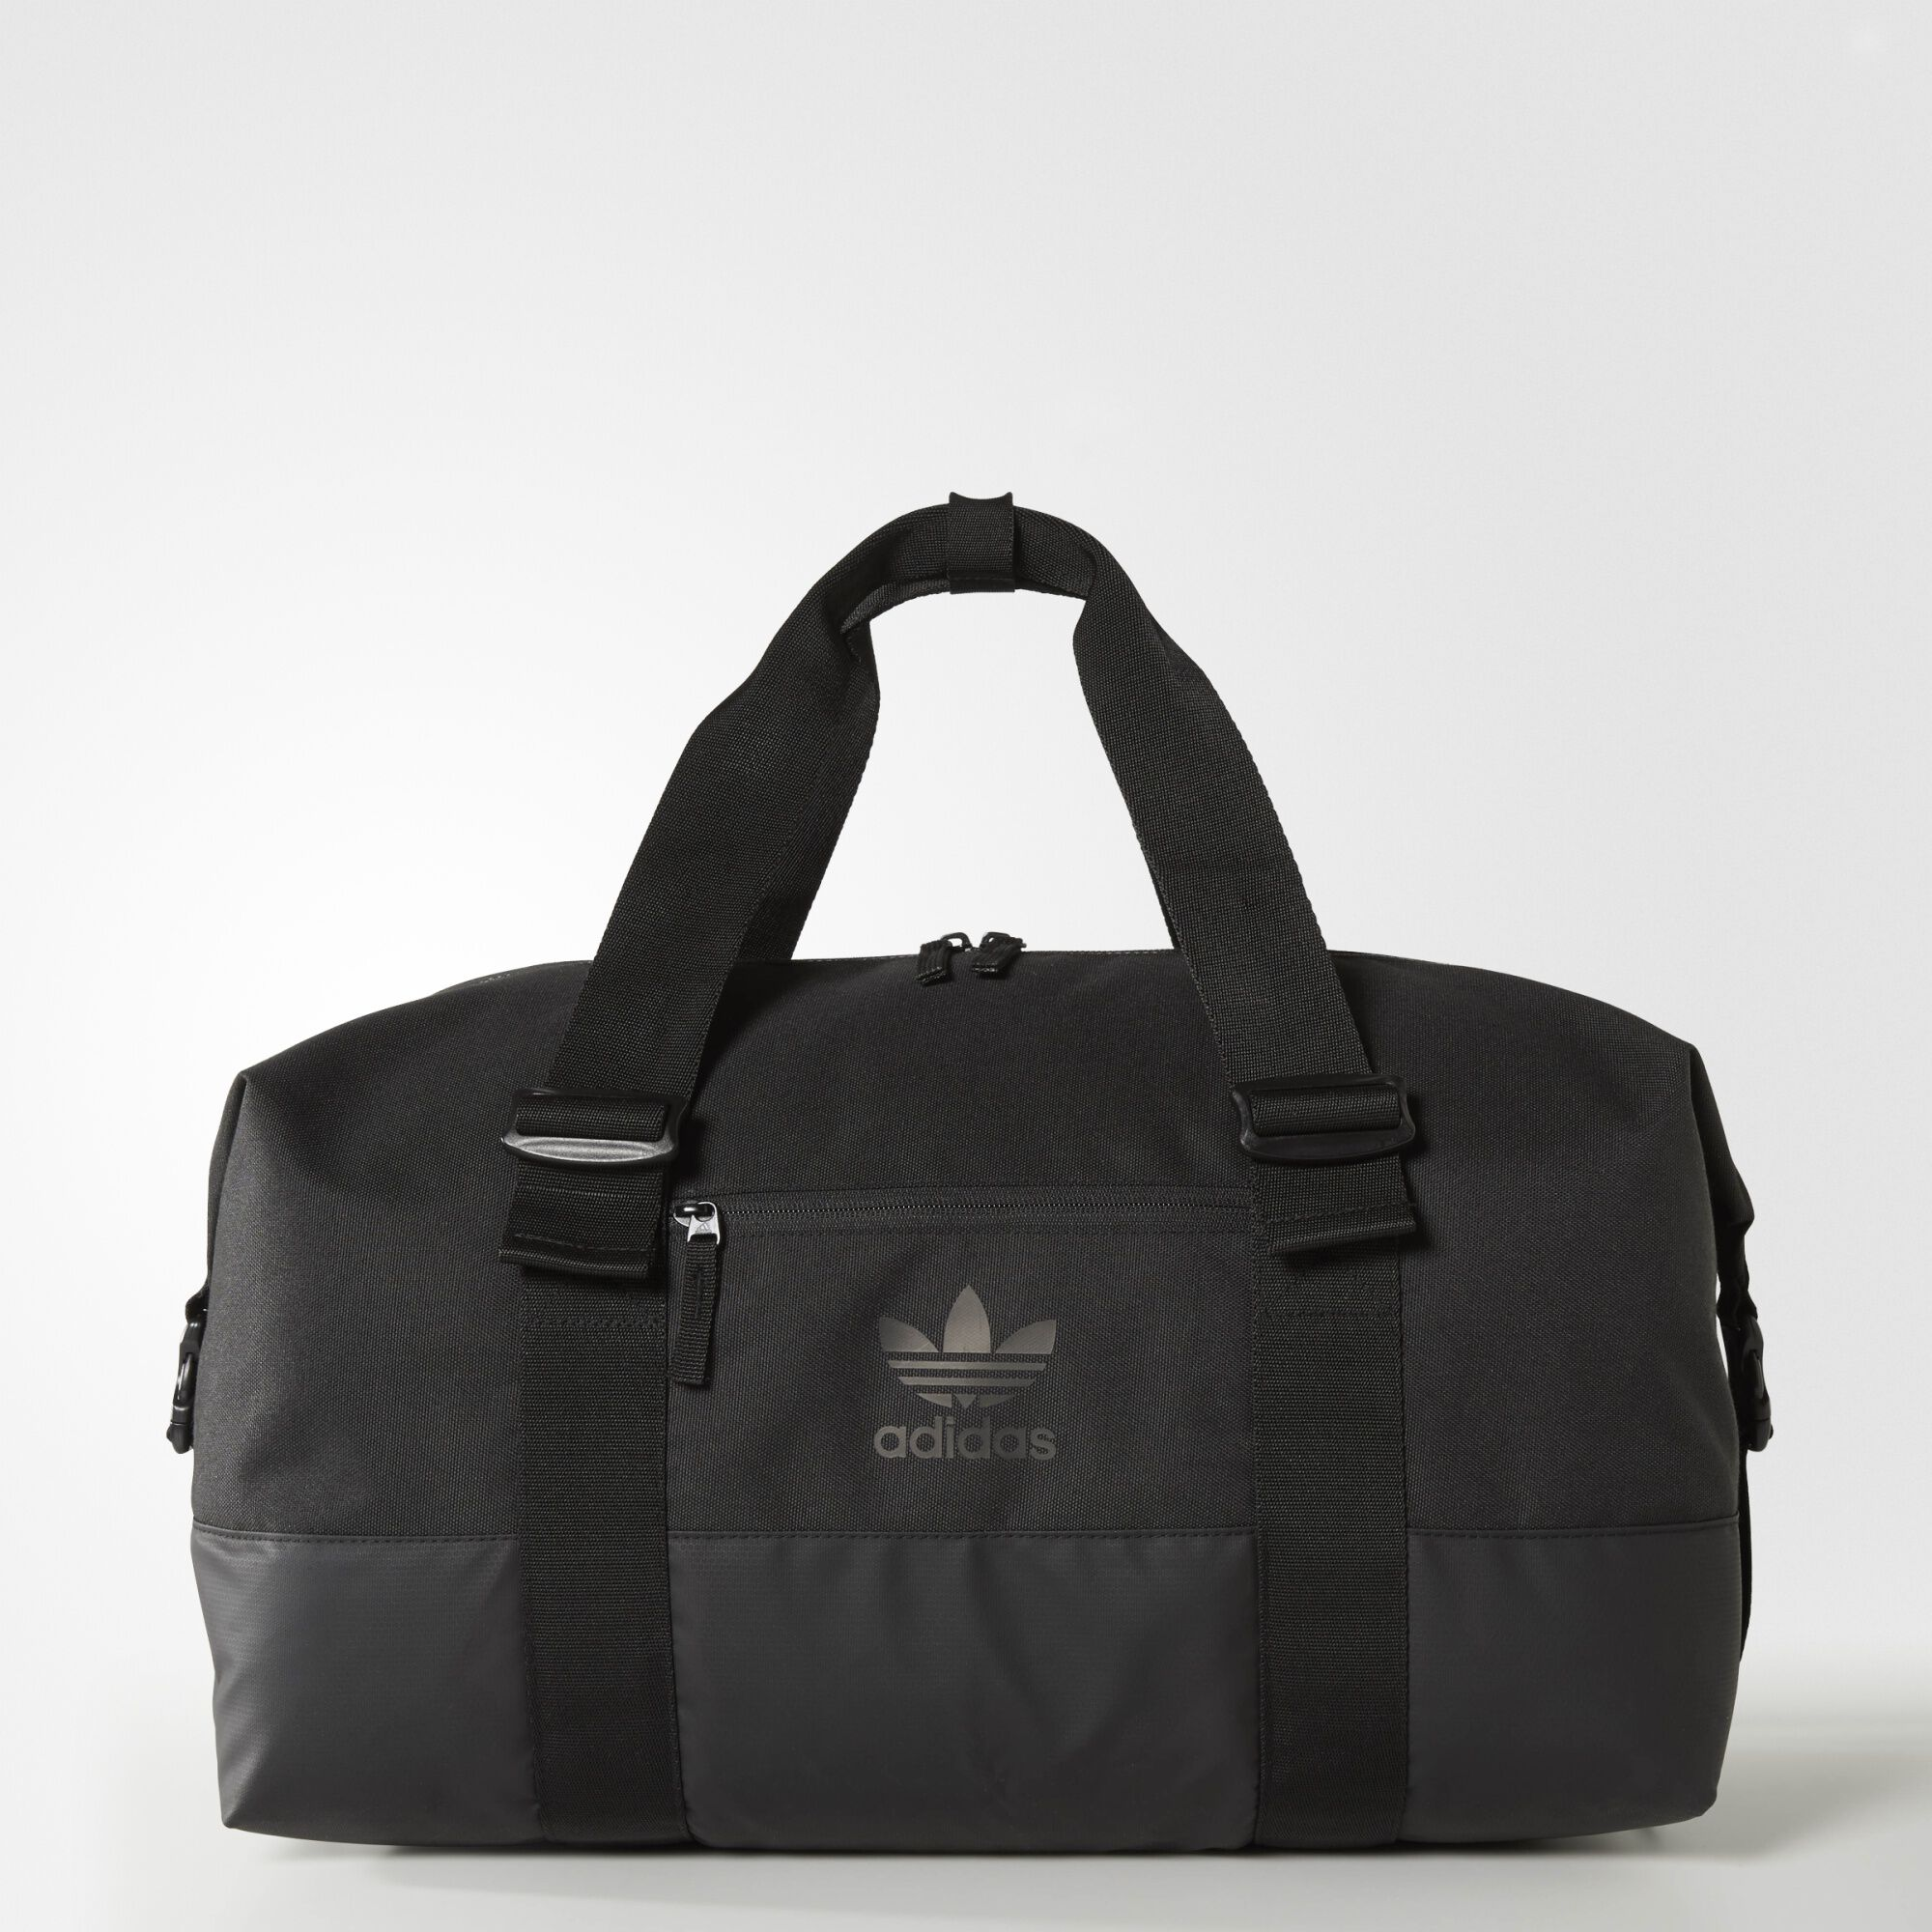 5014e538e9 Buy adidas originals duffle bag   OFF59% Discounted